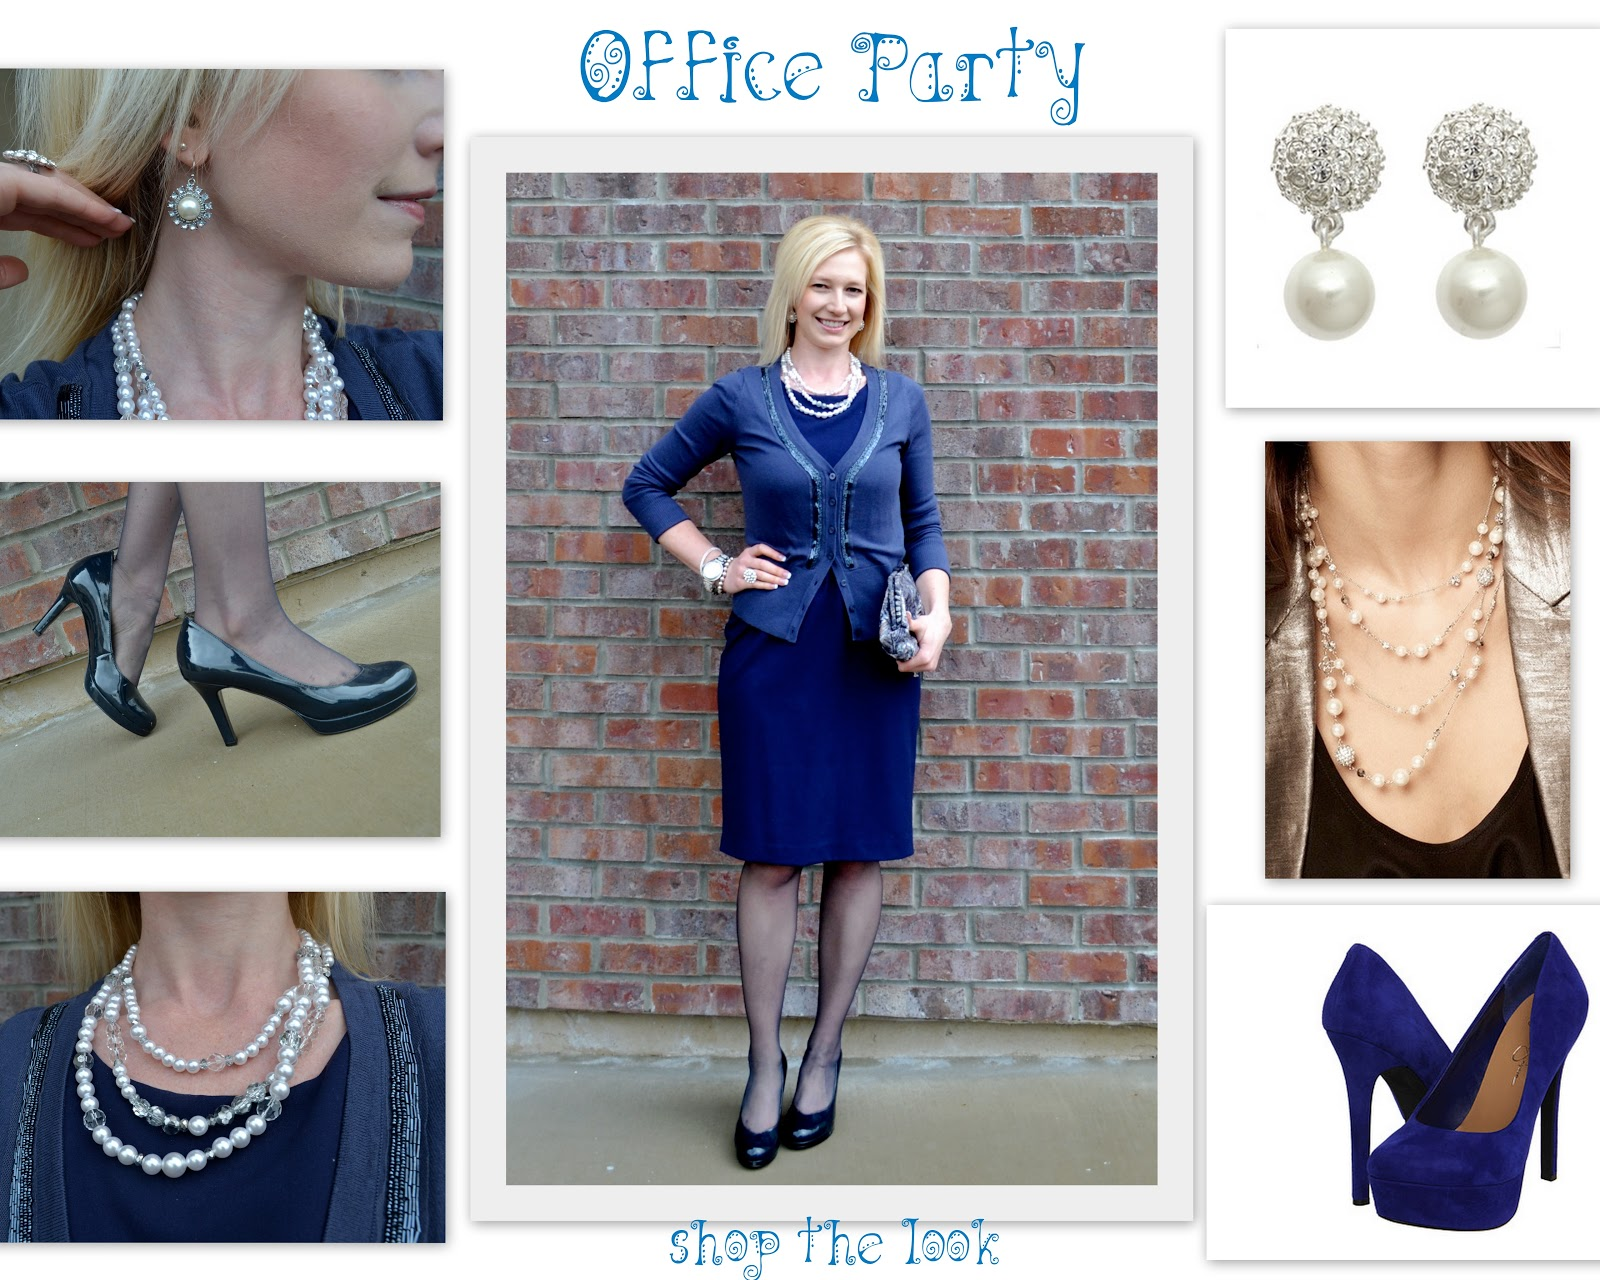 Christmas dress ideas for office party -  For The Office Party Look Pearl Necklace Earrings Heels